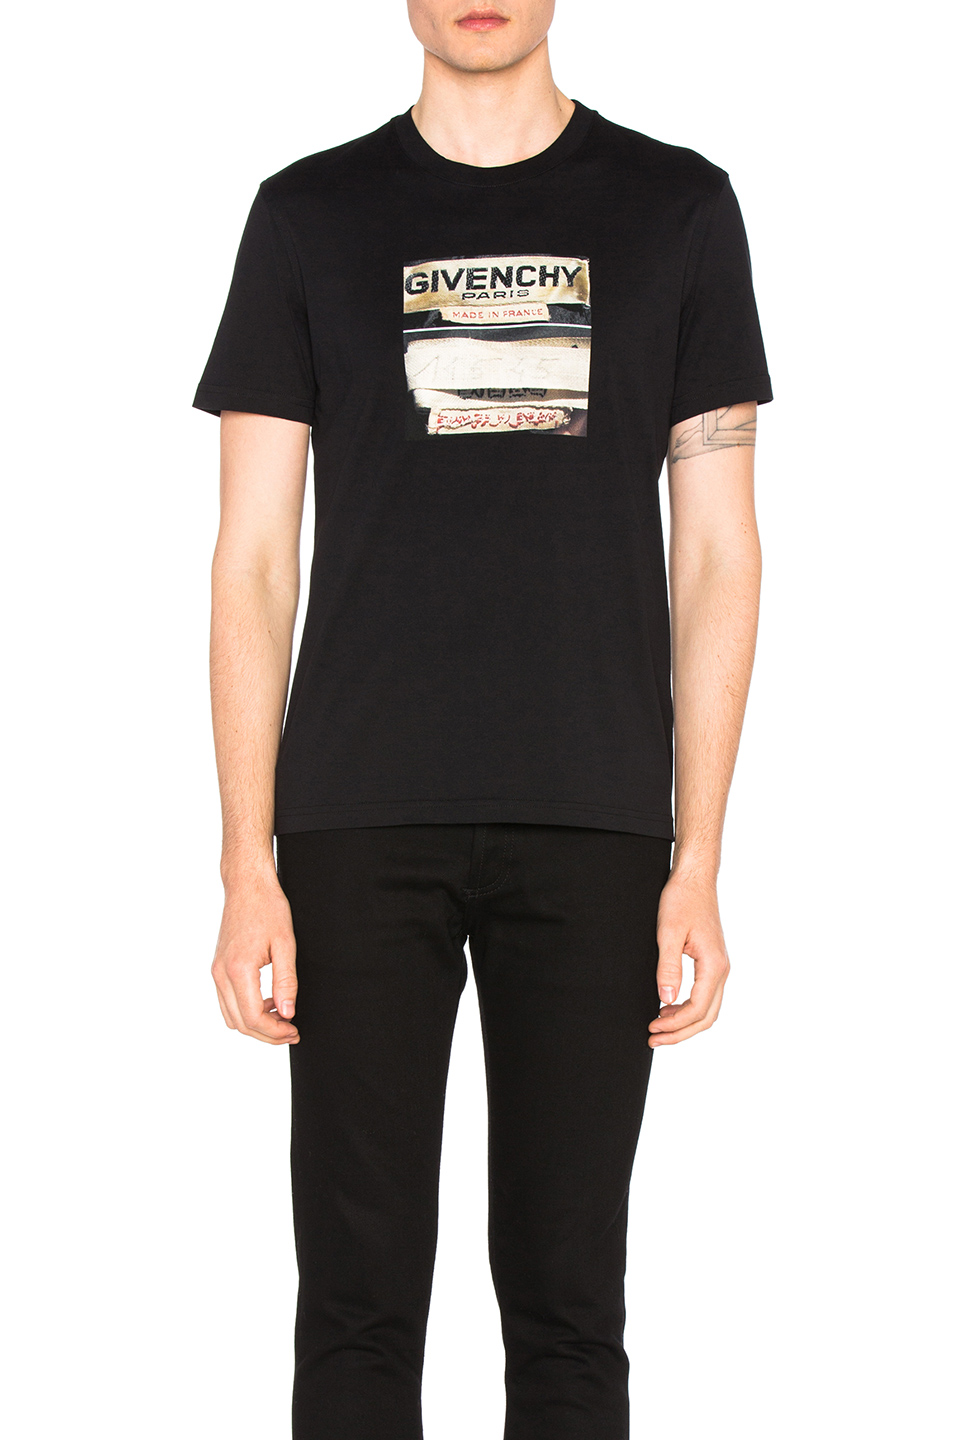 Photo of Givenchy Graphic Tee in Black - shop Givenchy menswear